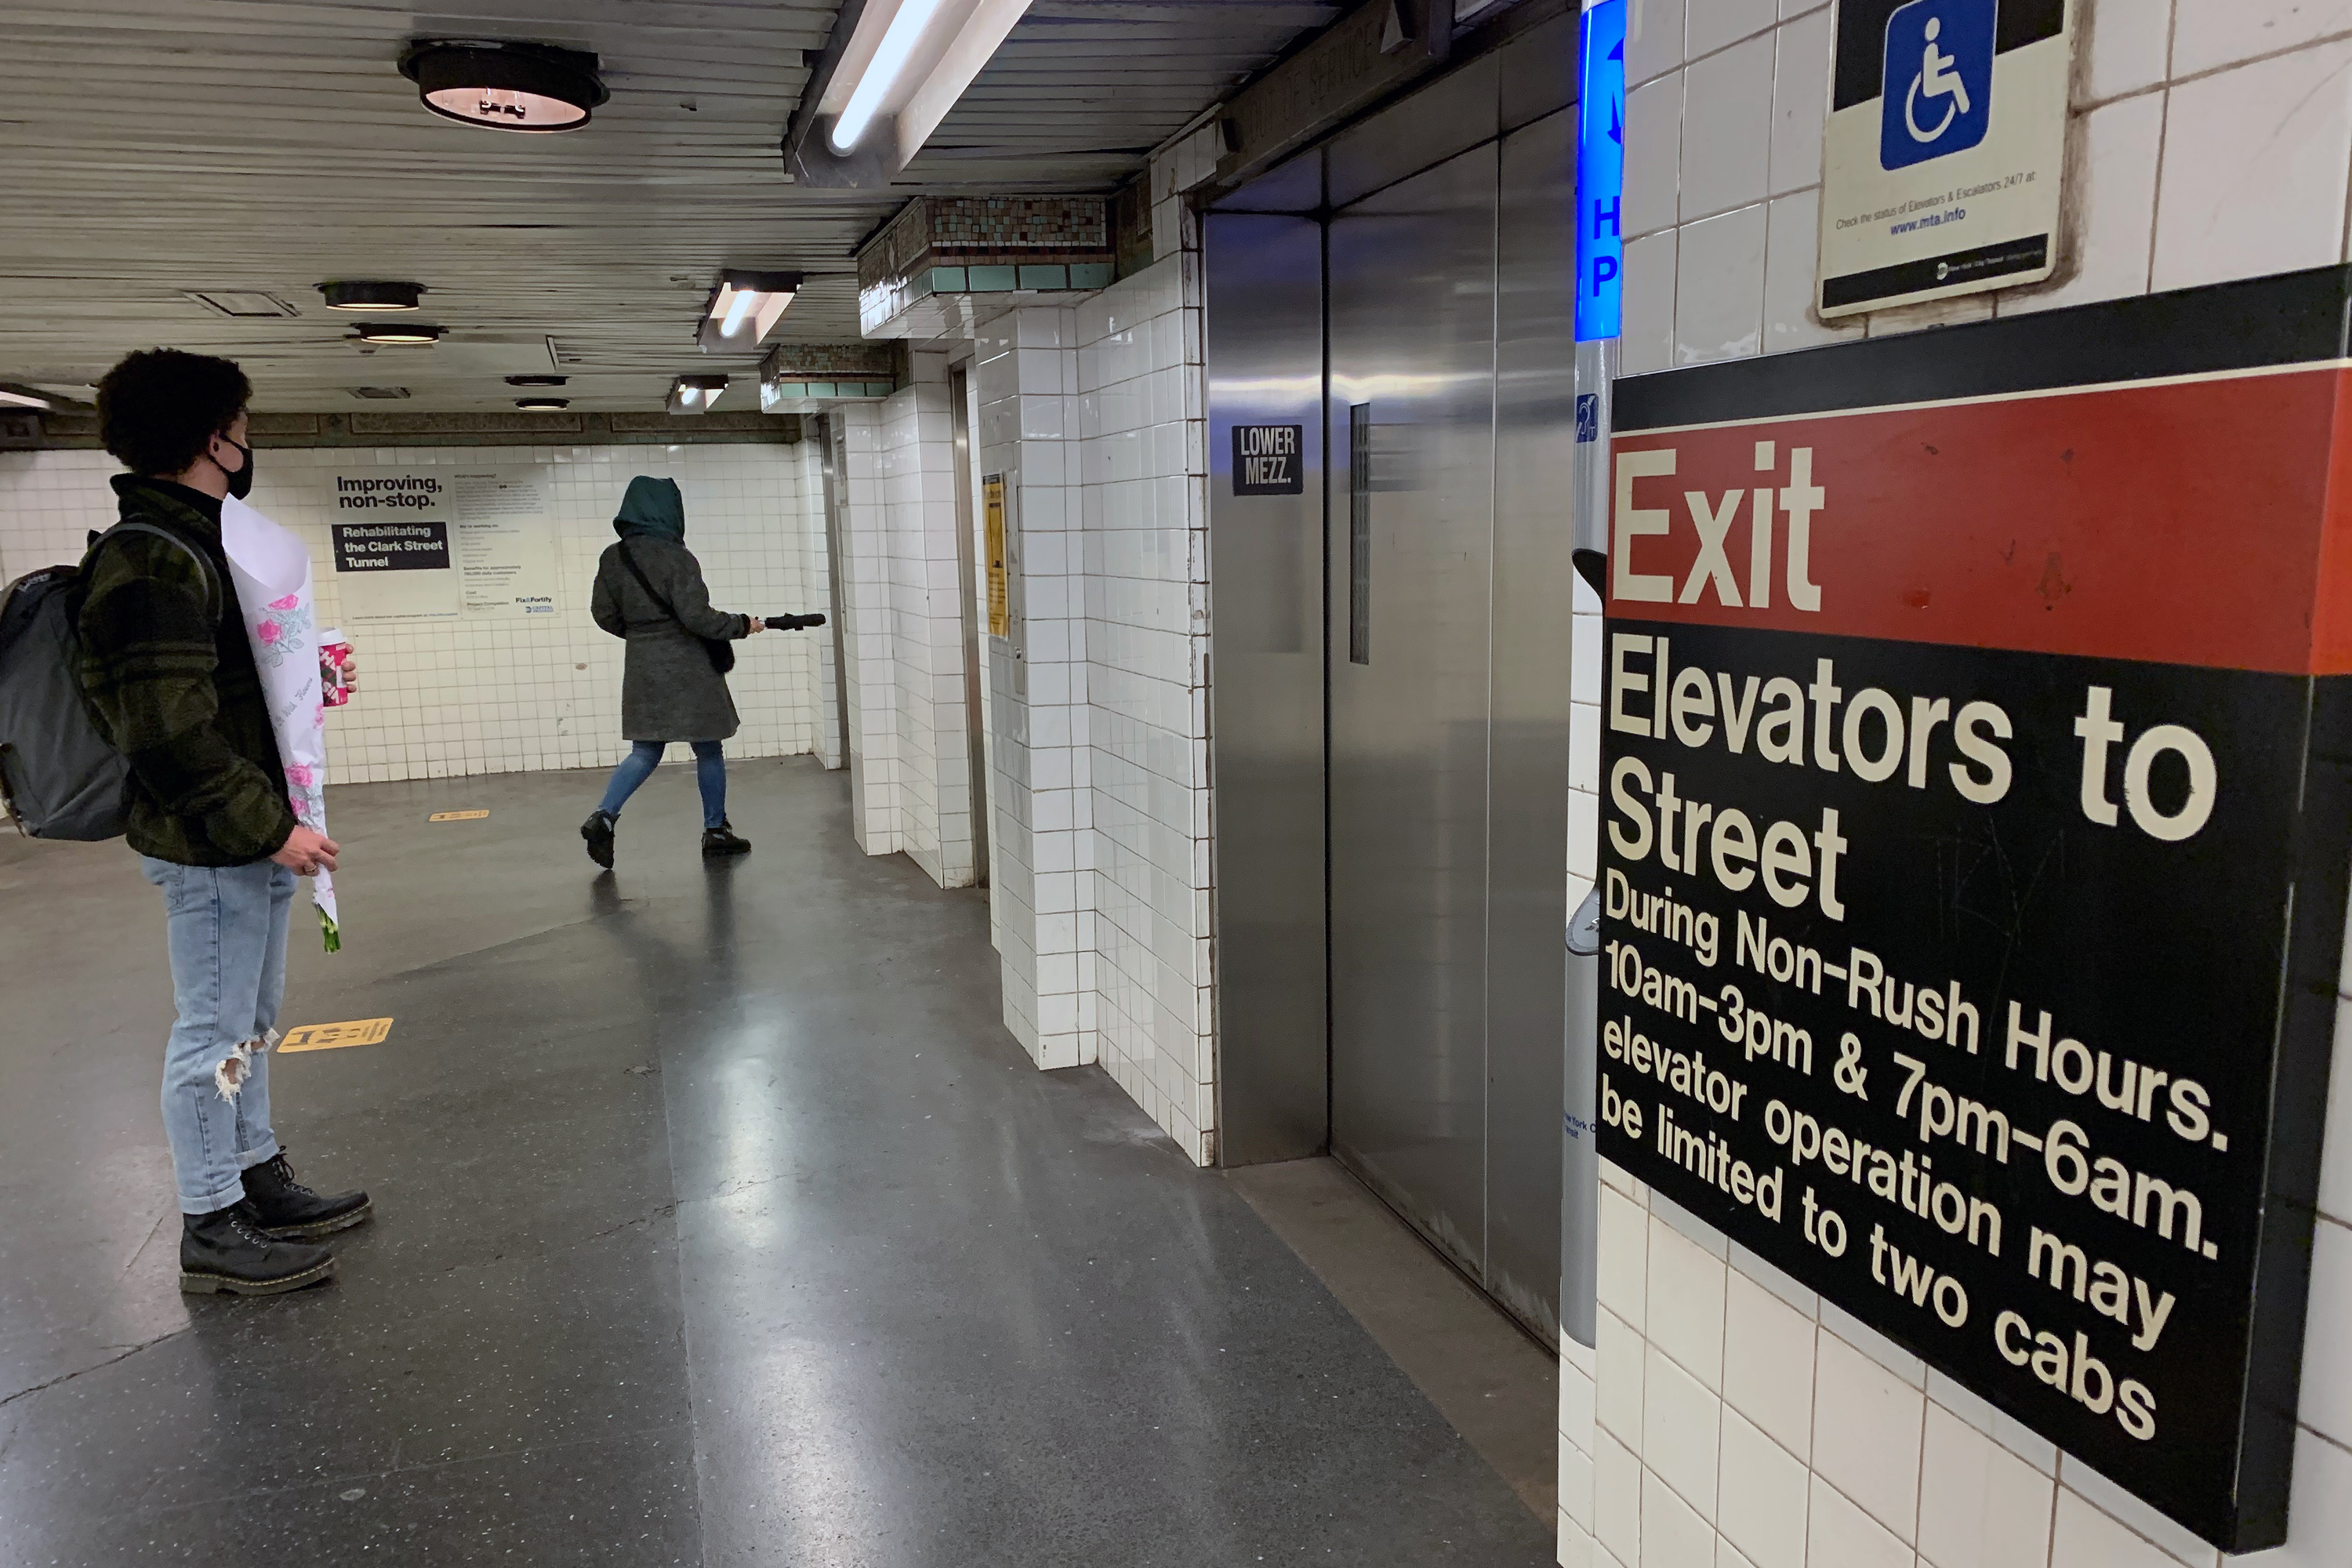 Riders wait for elevators at the Clark Street station in Brooklyn Heights, Nov. 17, 2020.